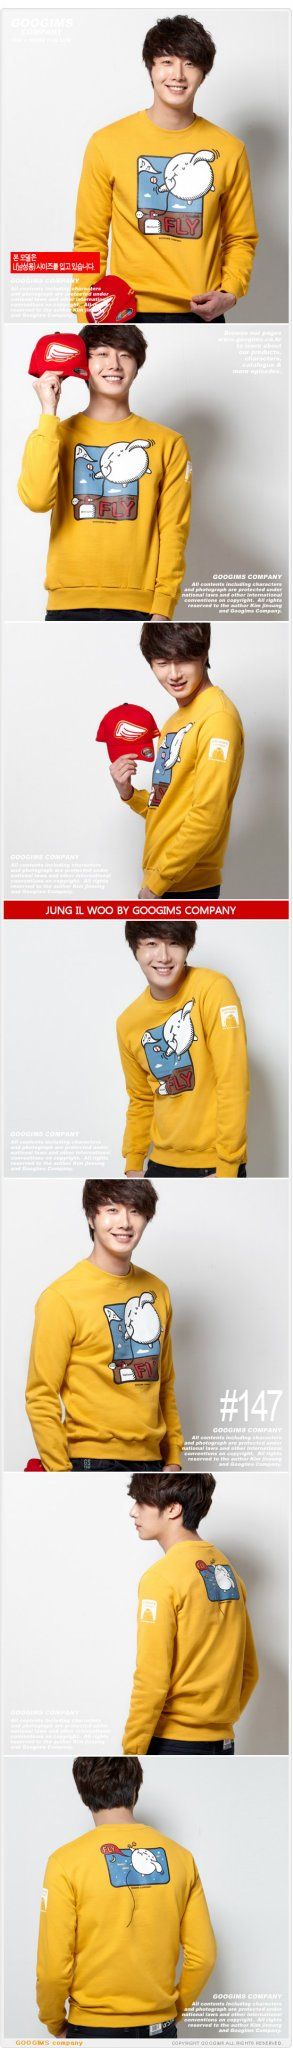 2011 10 Jung II-woo for Googims. Part 100011